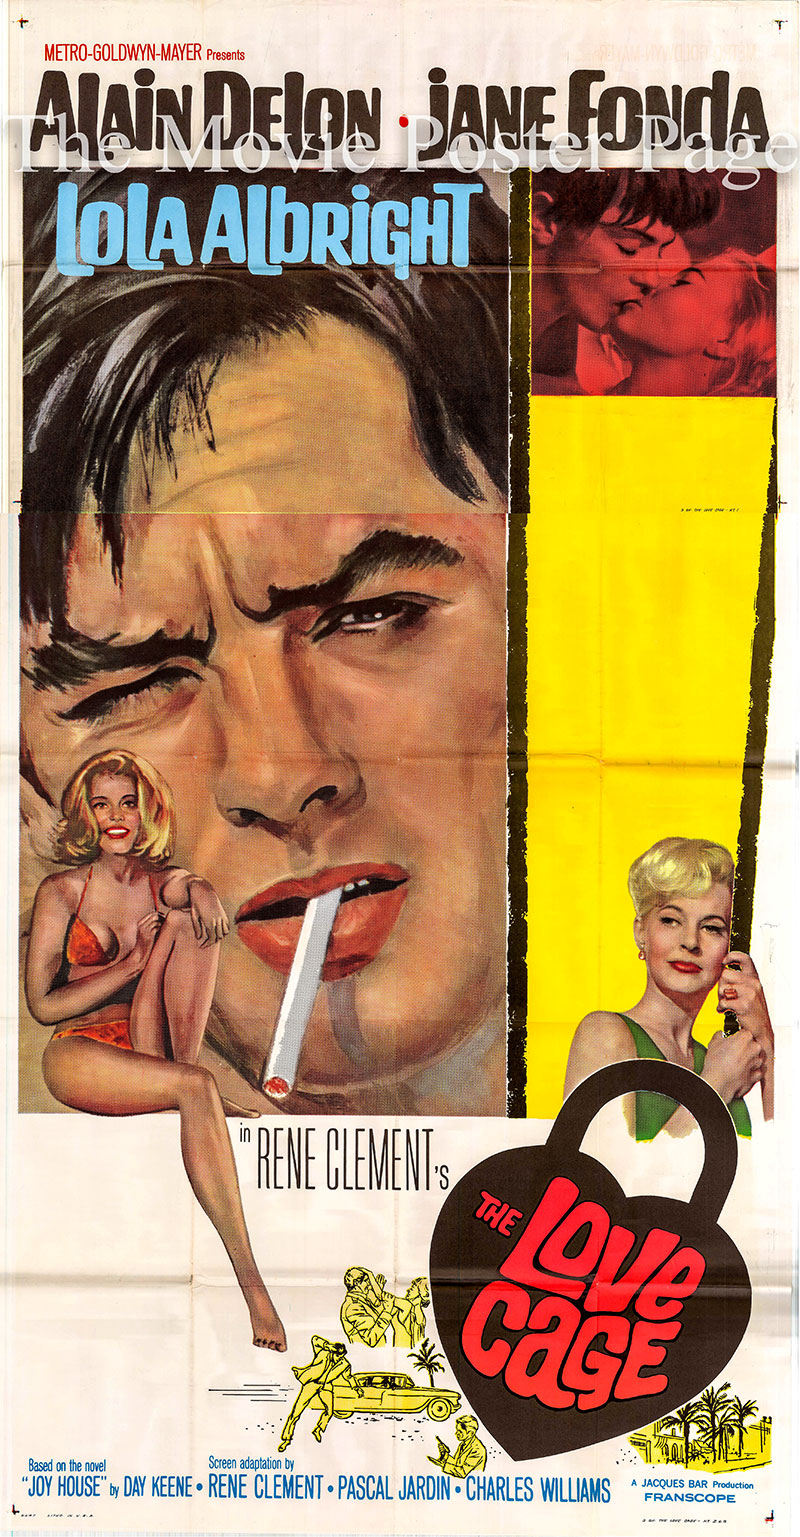 Pictured is a US three-sheet poster for the 1964 Rene Clement film The Love Cage starring Alain Delon.